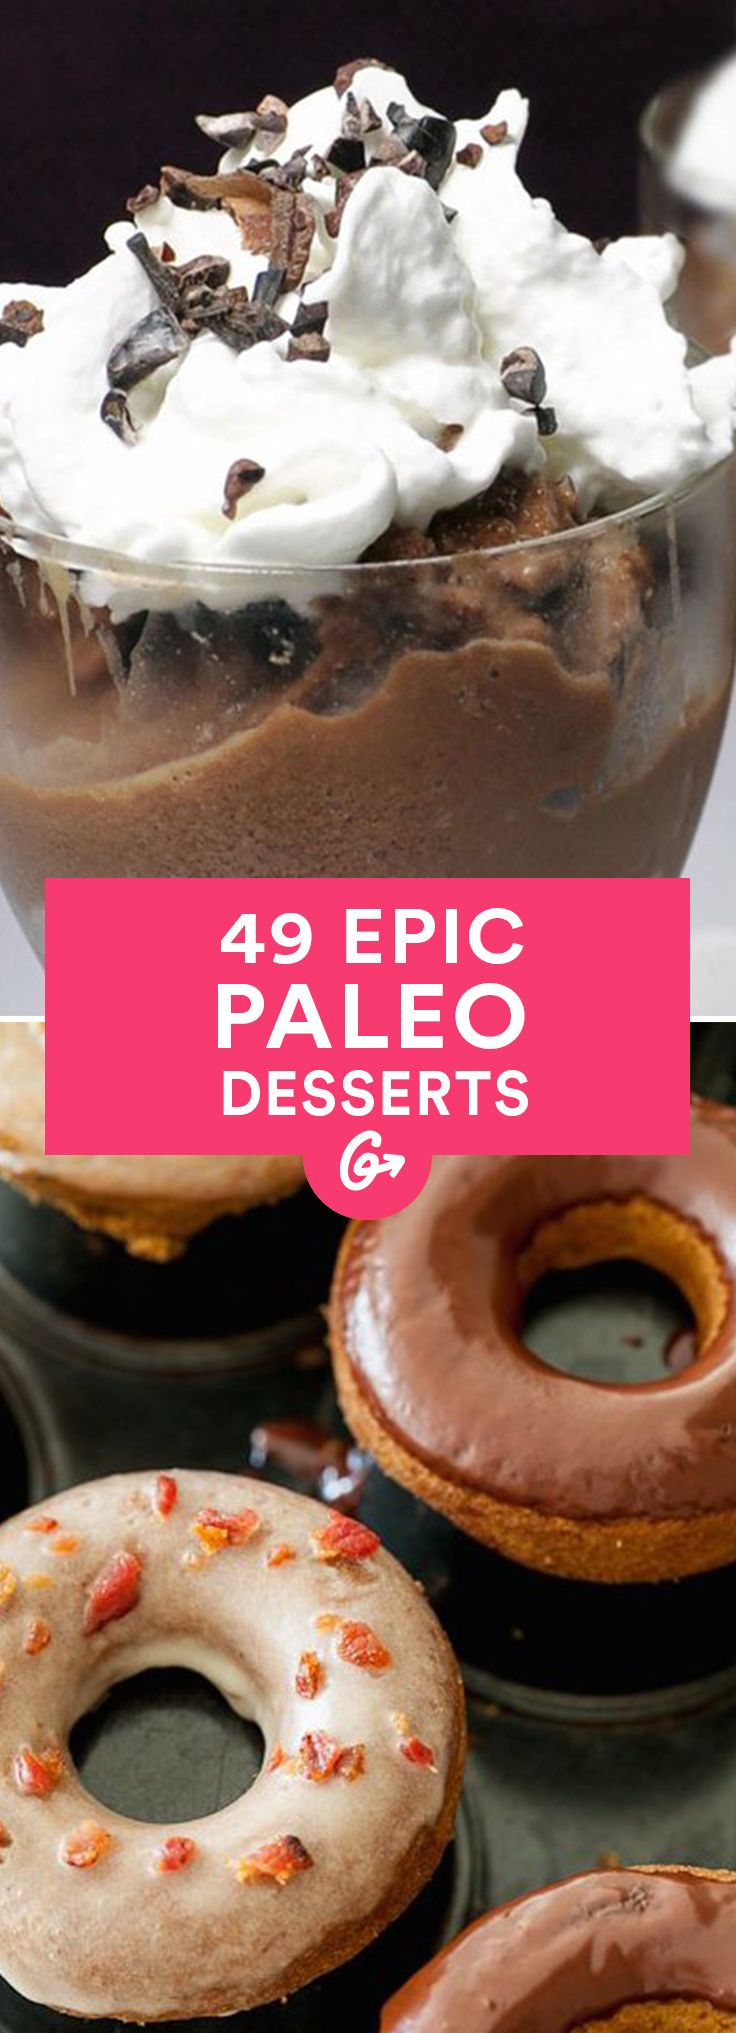 49 Paleo Desserts That Taste Anything But #paleo #desserts http://greatist.com/eat/paleo-dessert-recipes